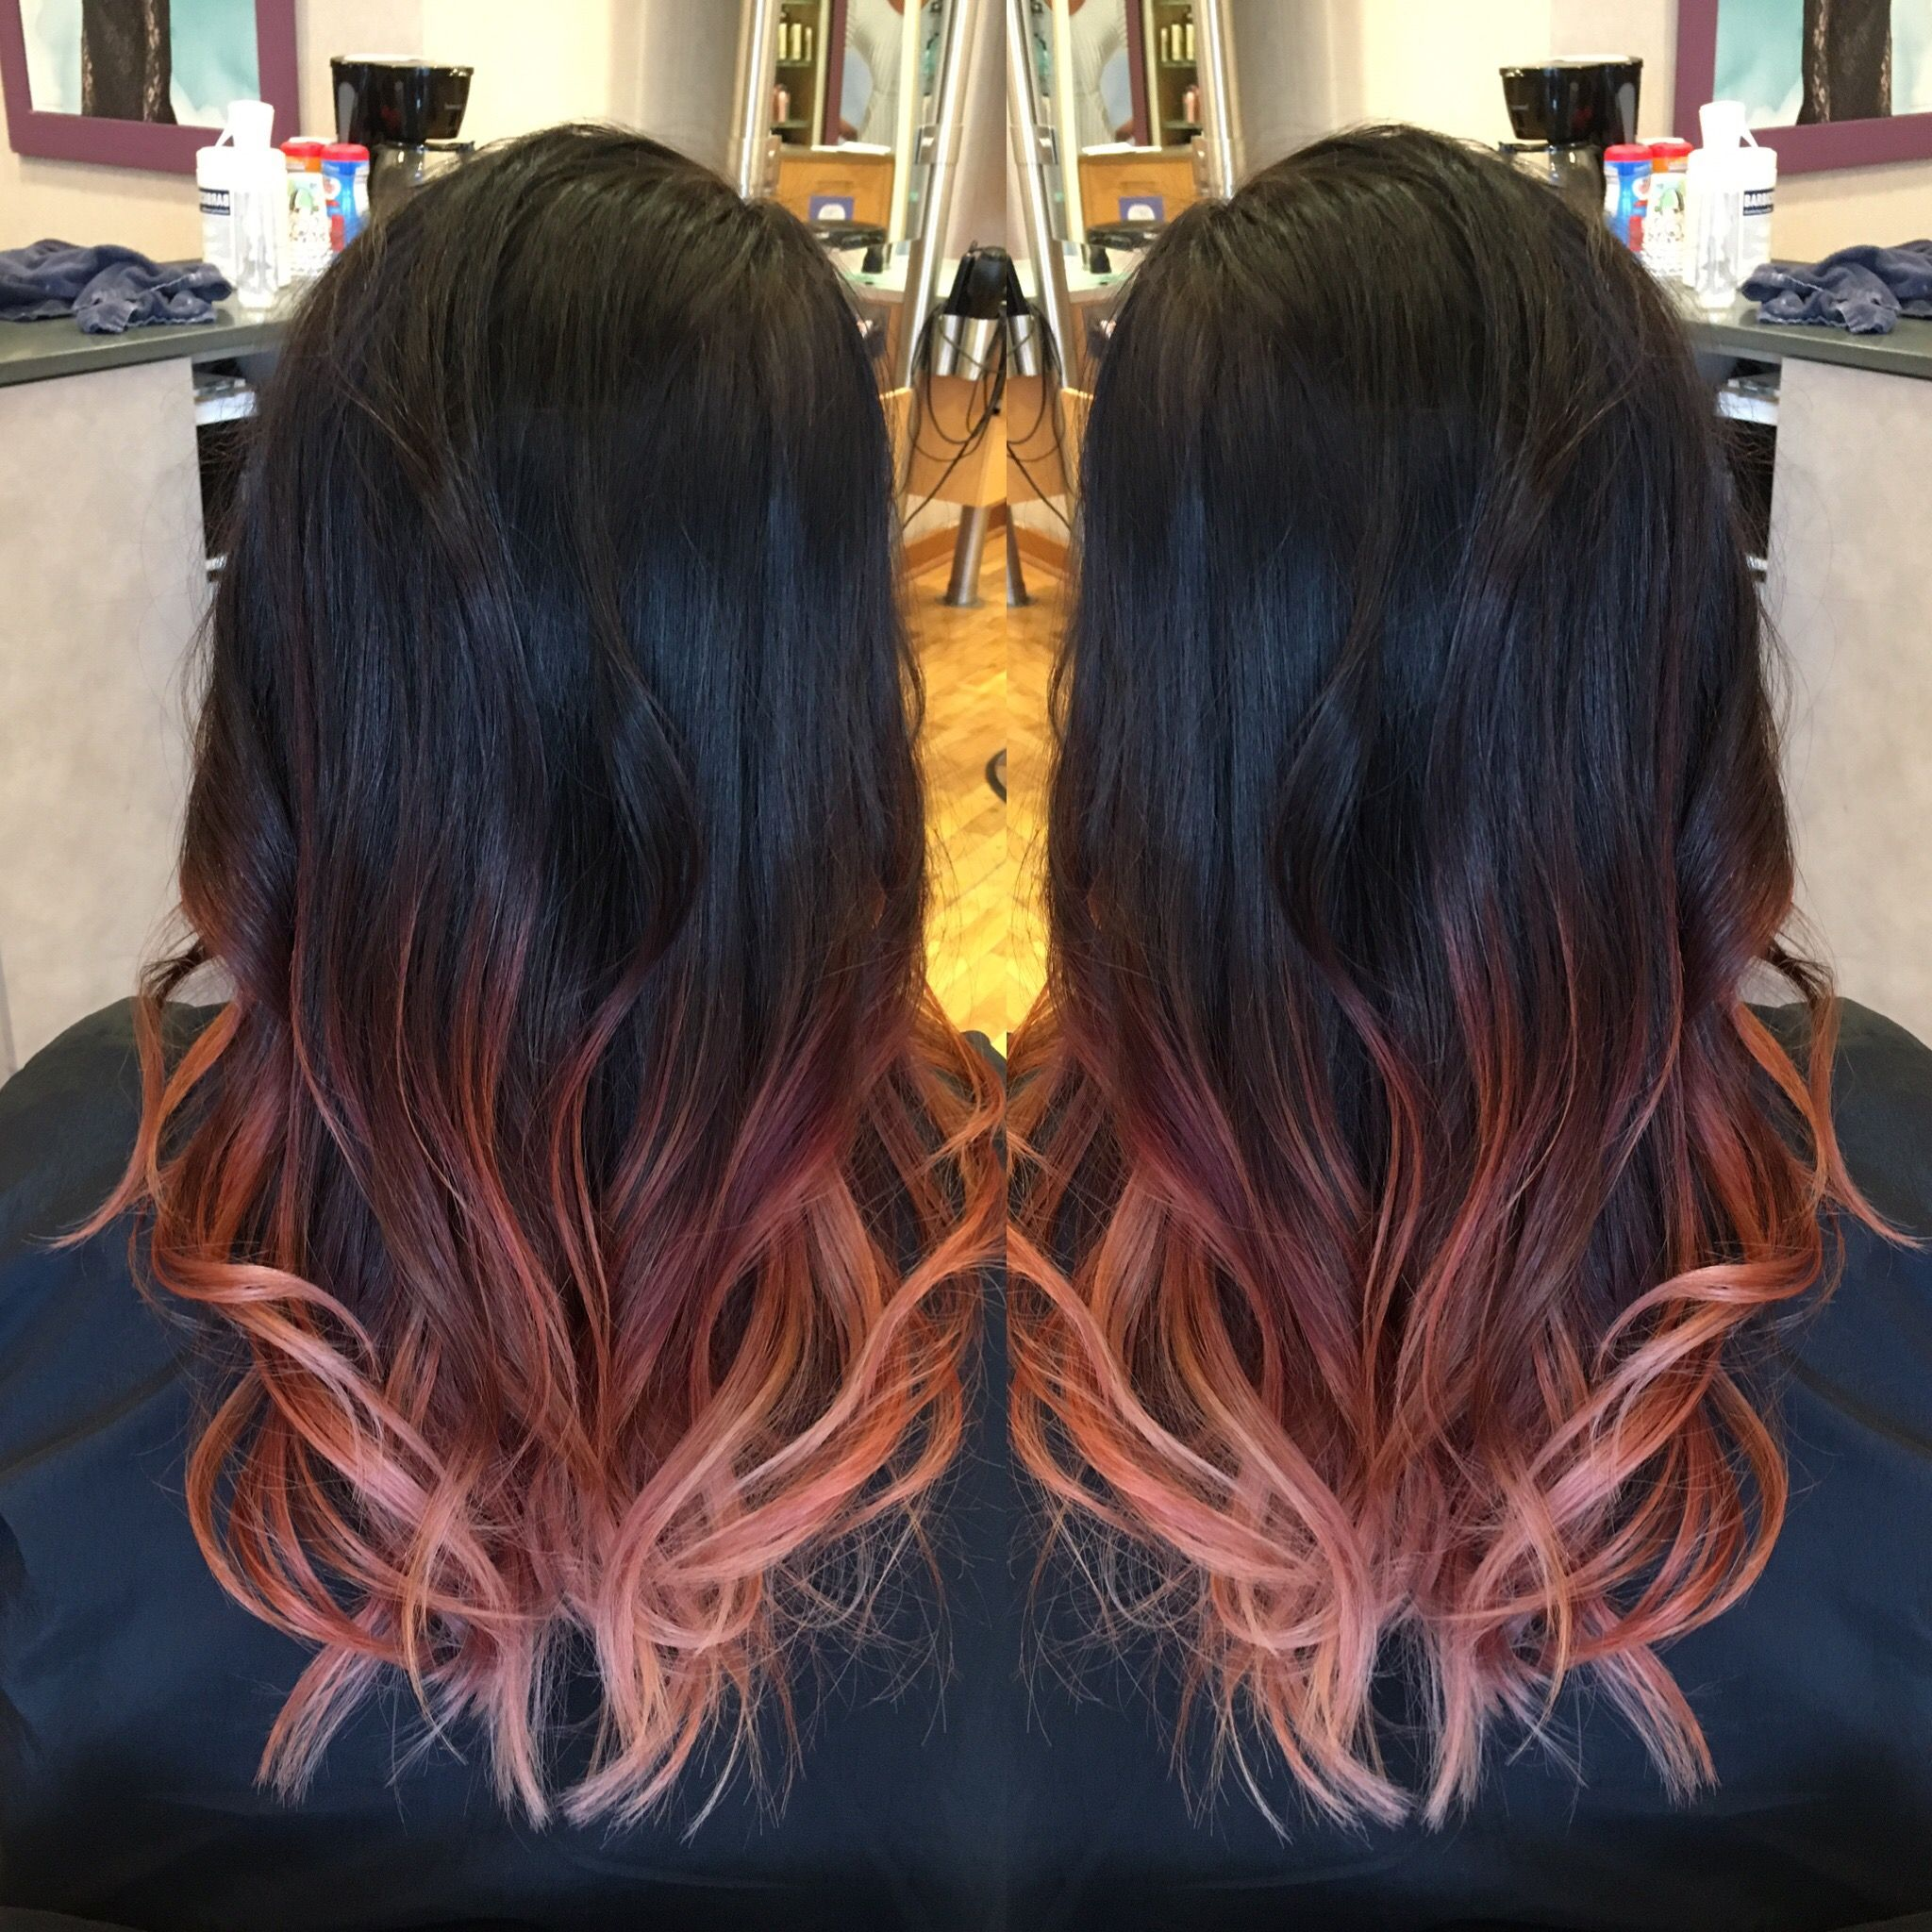 Black hair and rose gold ombre done by Katie S